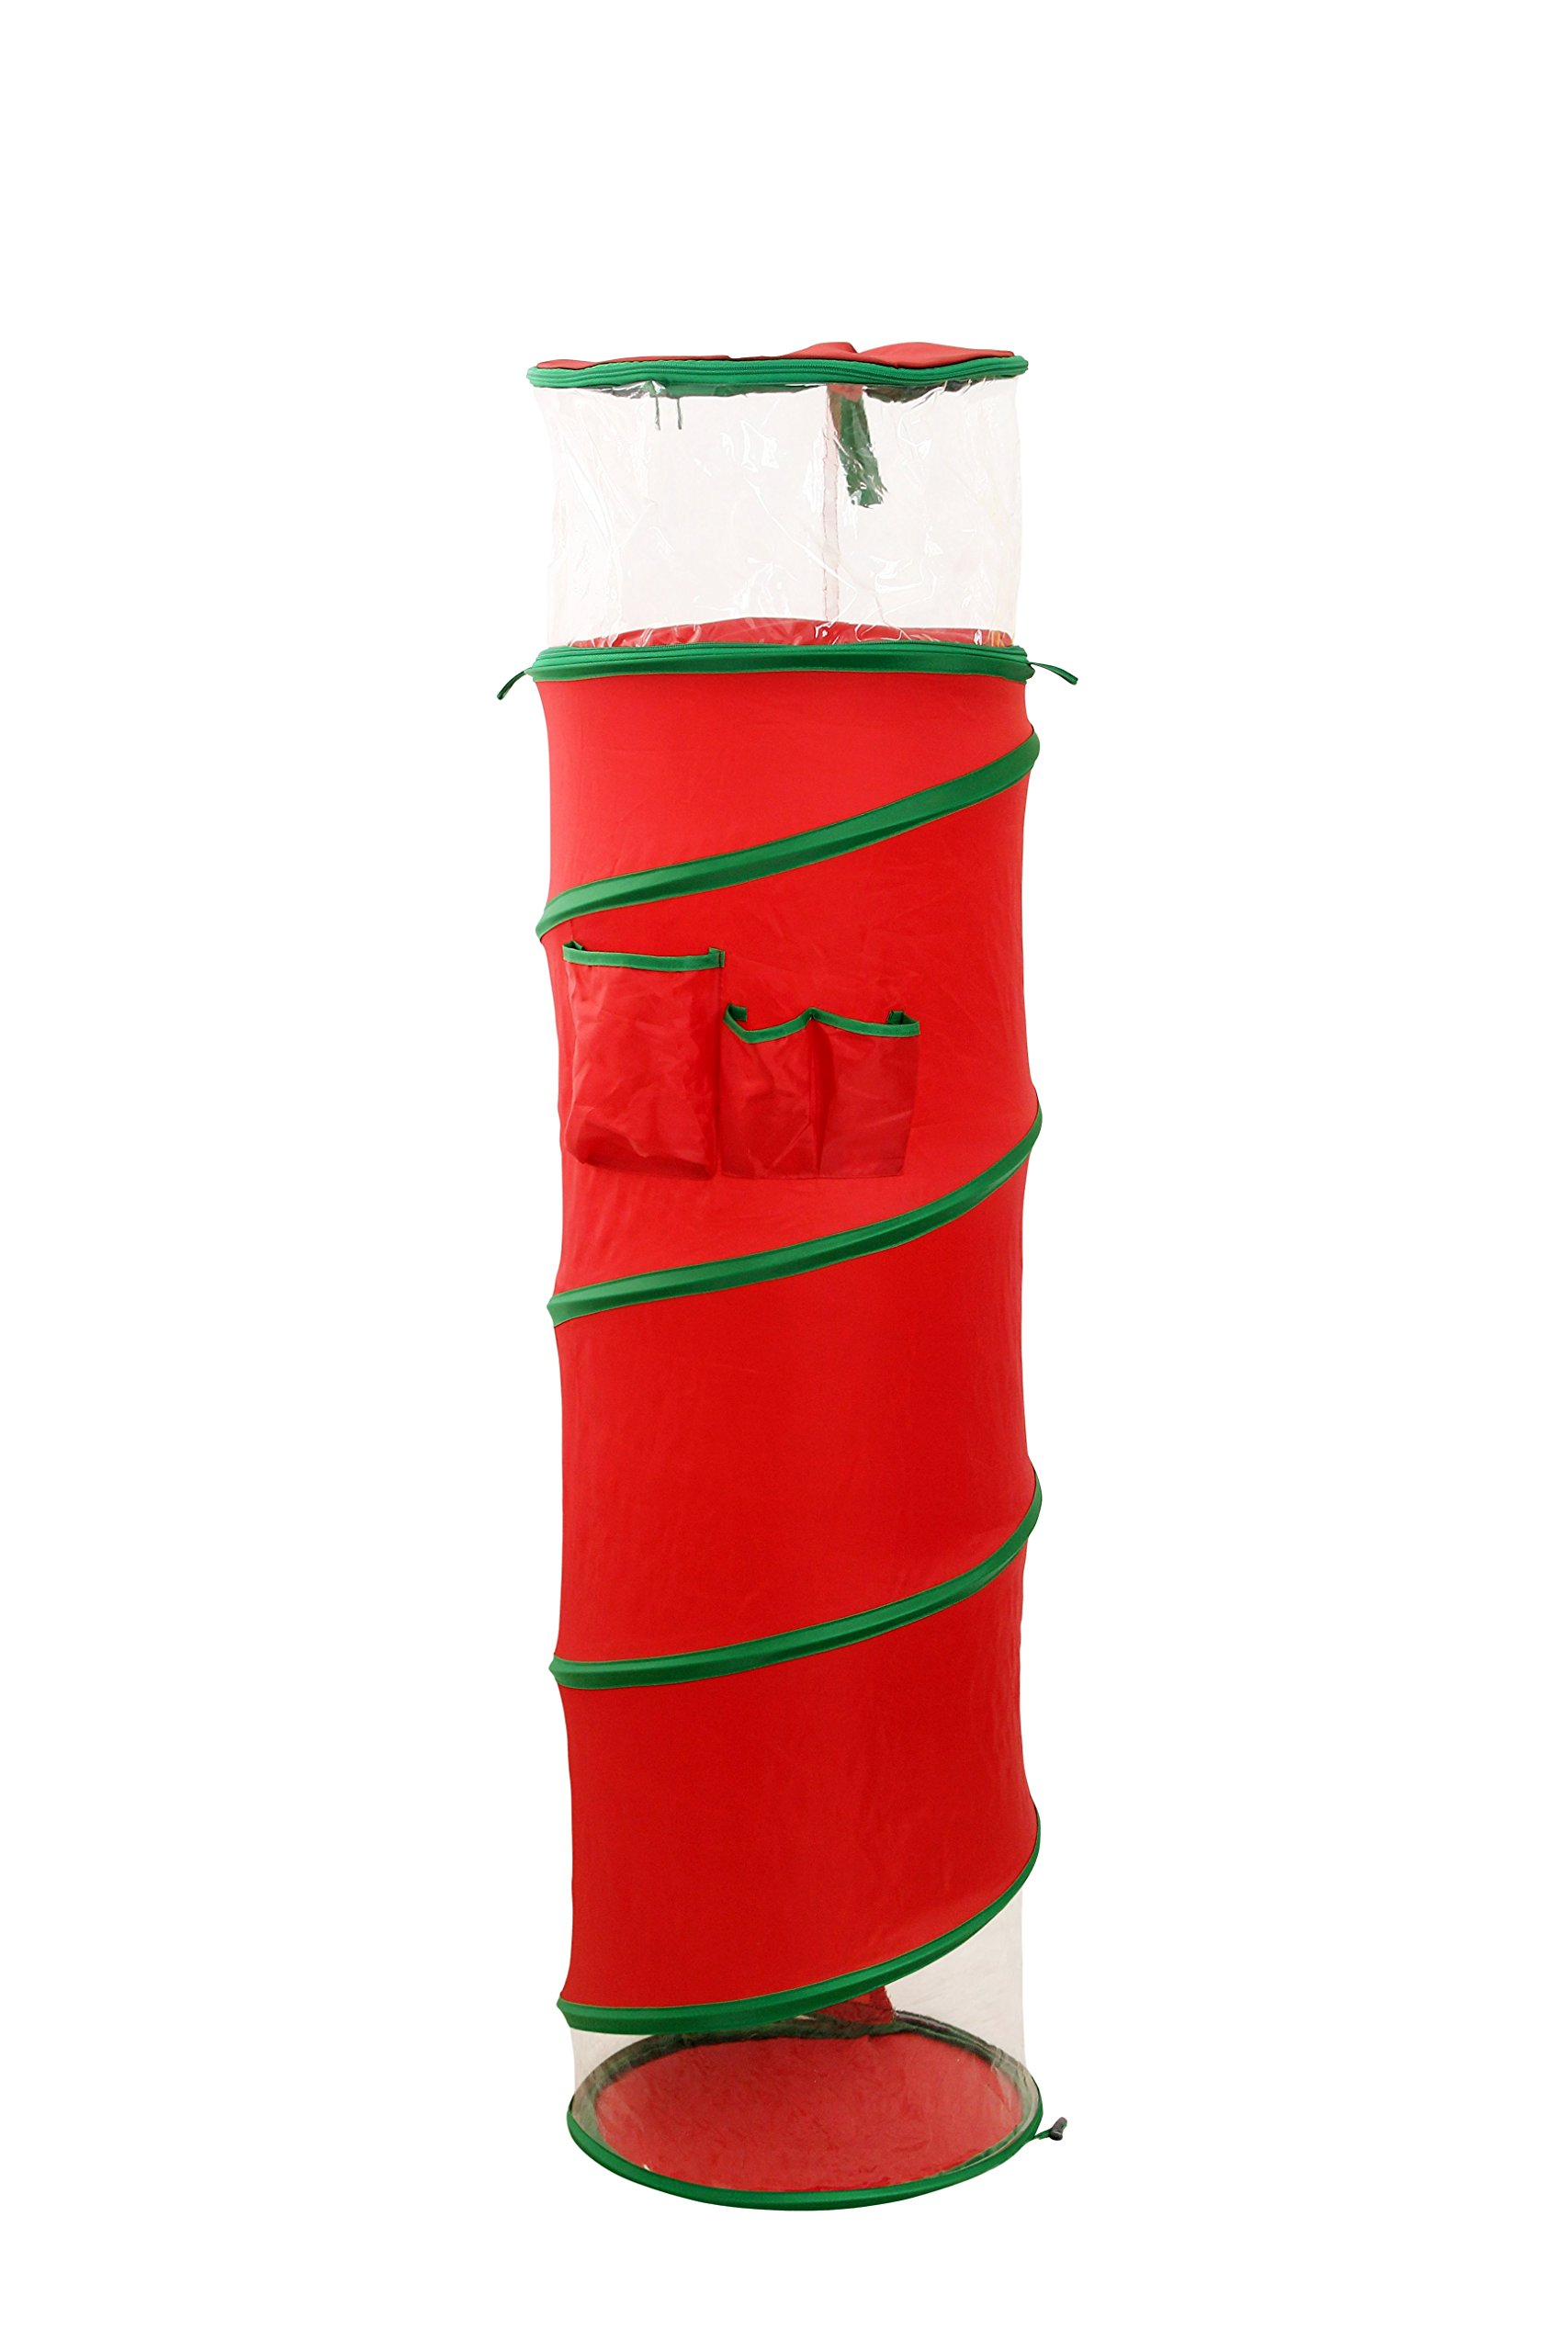 nGenius Hanging Pop Open Gift Wrap Storage Organizer - Large Size, for rolls up to 40in